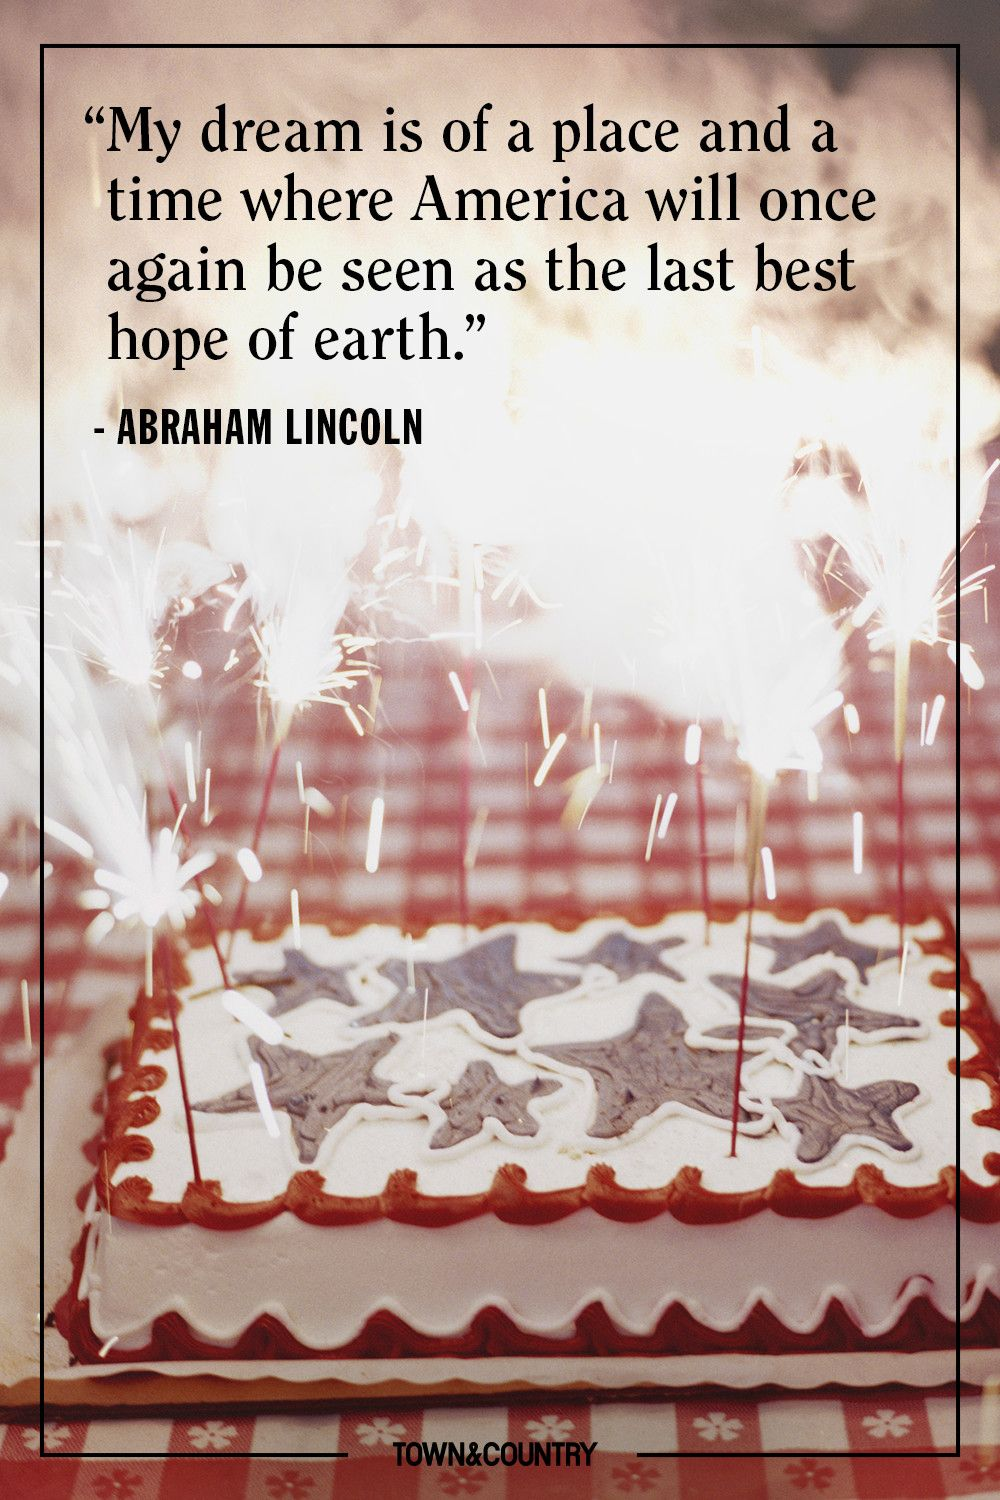 """""""My dream is of a place and a time where America will once again be seen as the last best hope of earth."""" — Abraham Lincoln"""